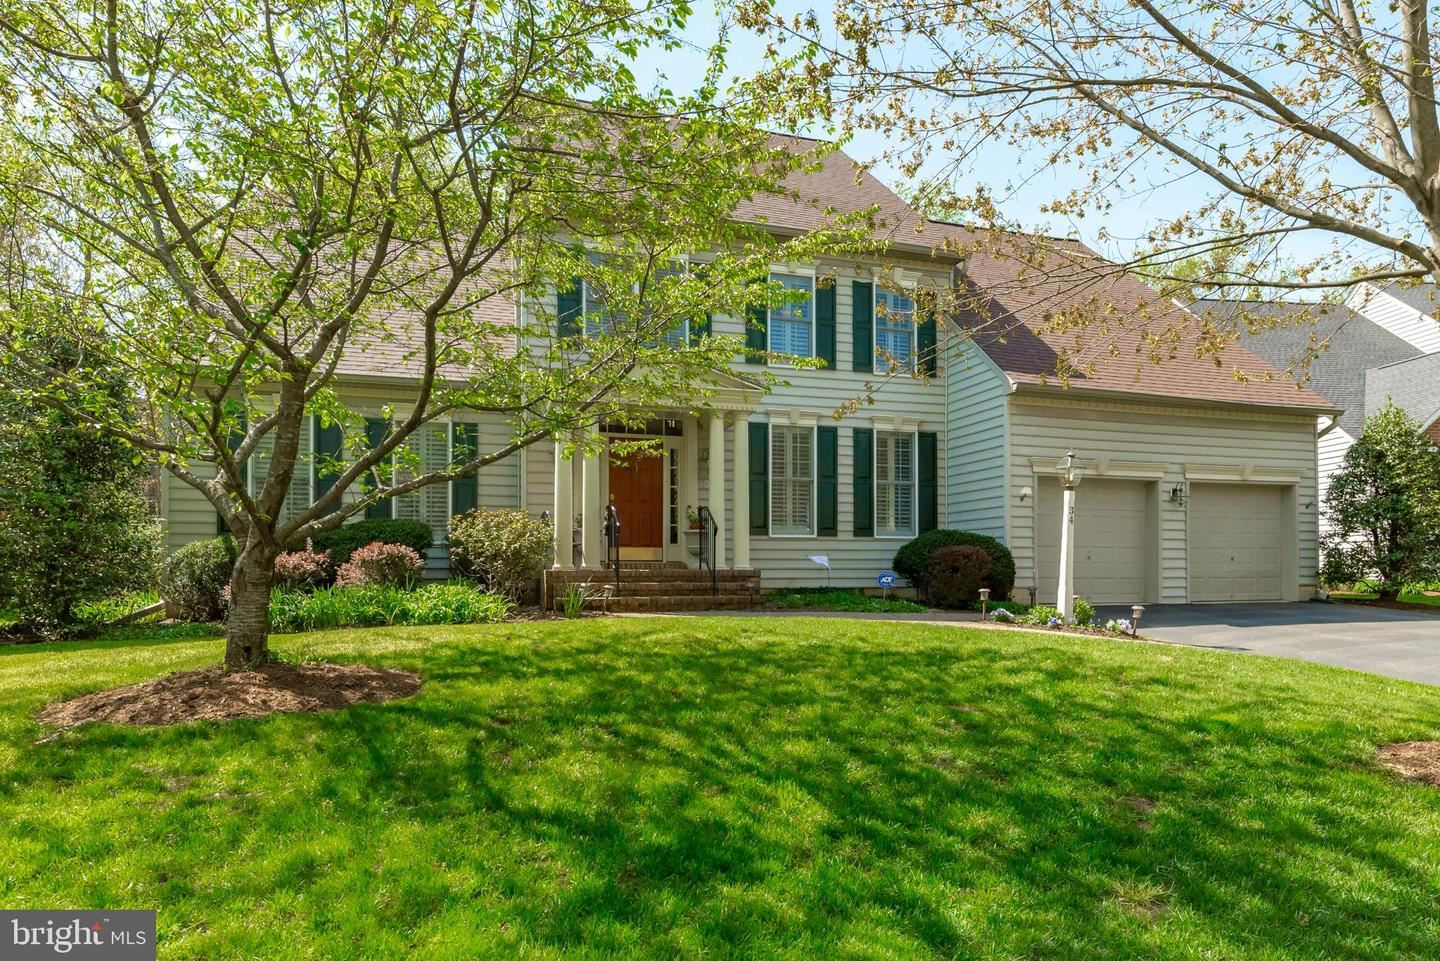 34 HARNESS CREEK VIEW CT, Annapolis, MD 21403 - MLS#: MDAA464876